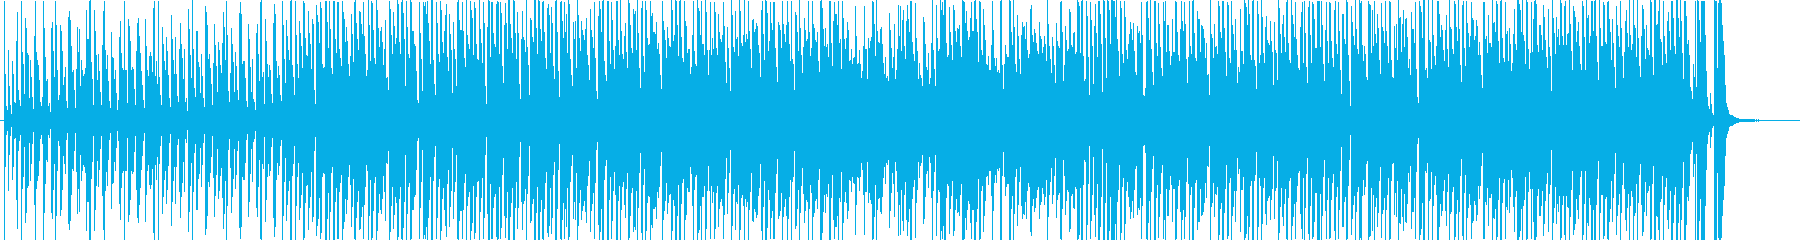 Summertime tropical country resort, no steel bread song's reproduced waveform